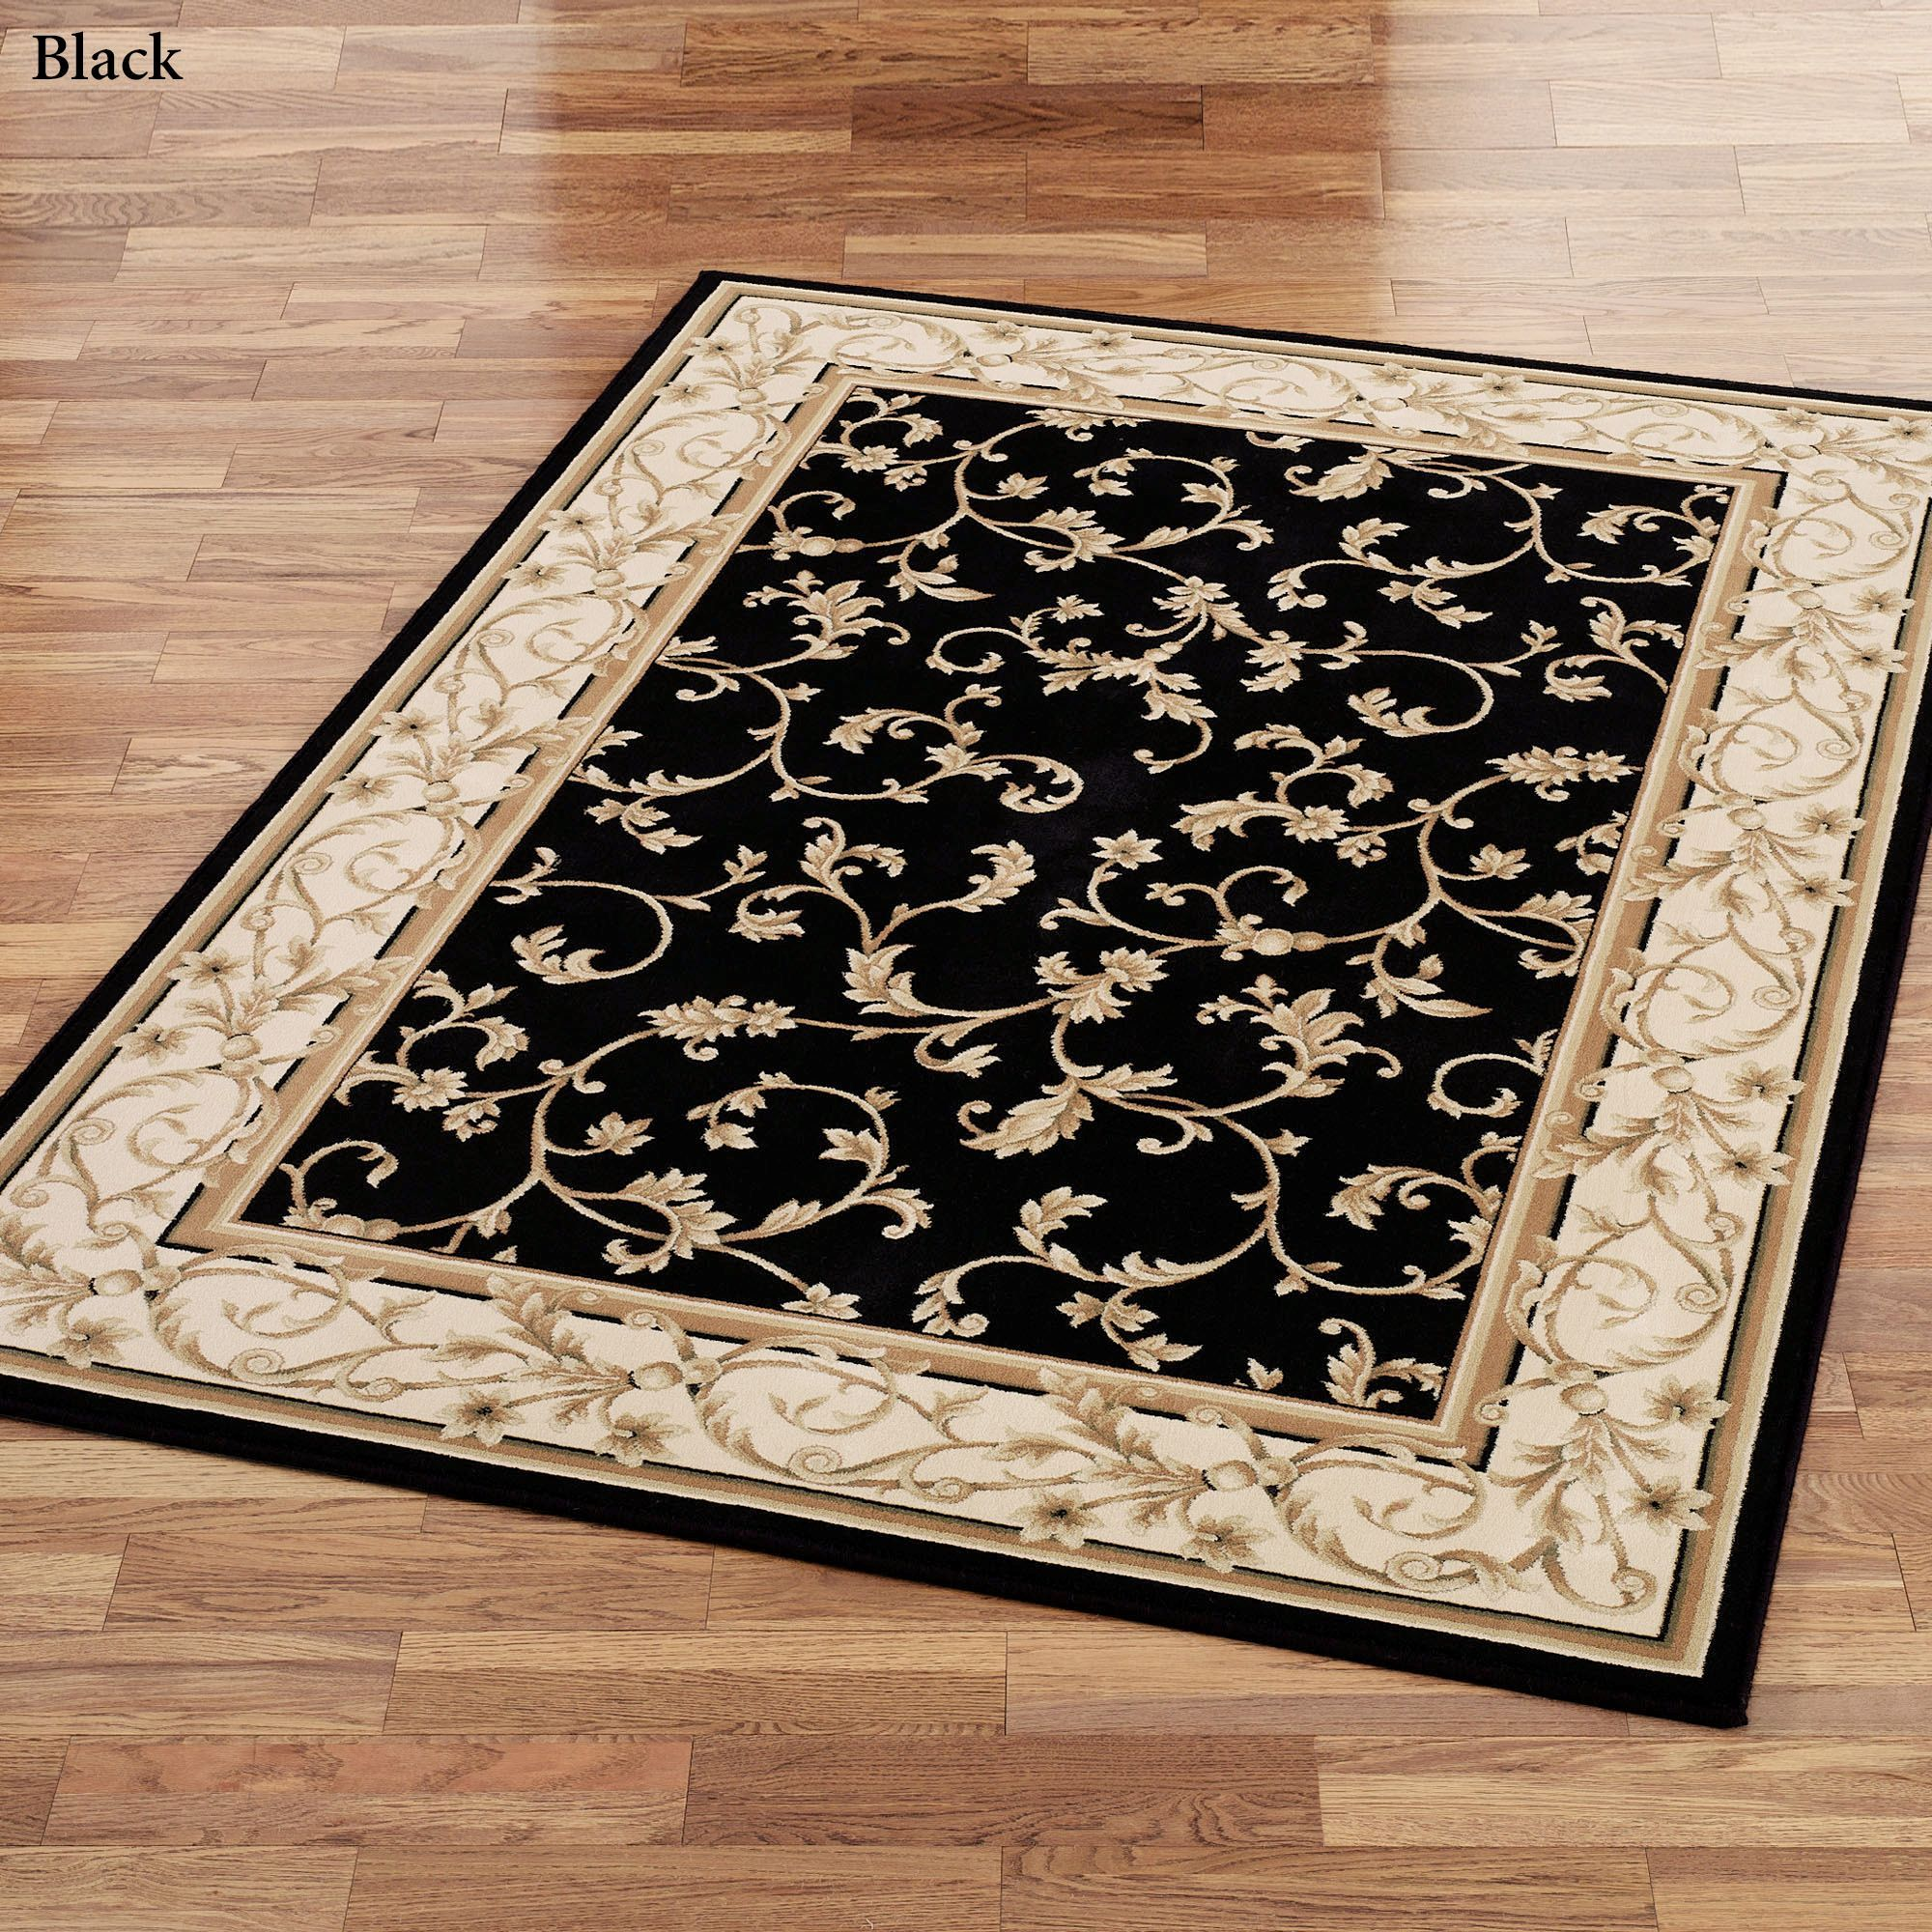 Felix Acanthus Vine Area Rugs W 2018 There Is A Home In My Head